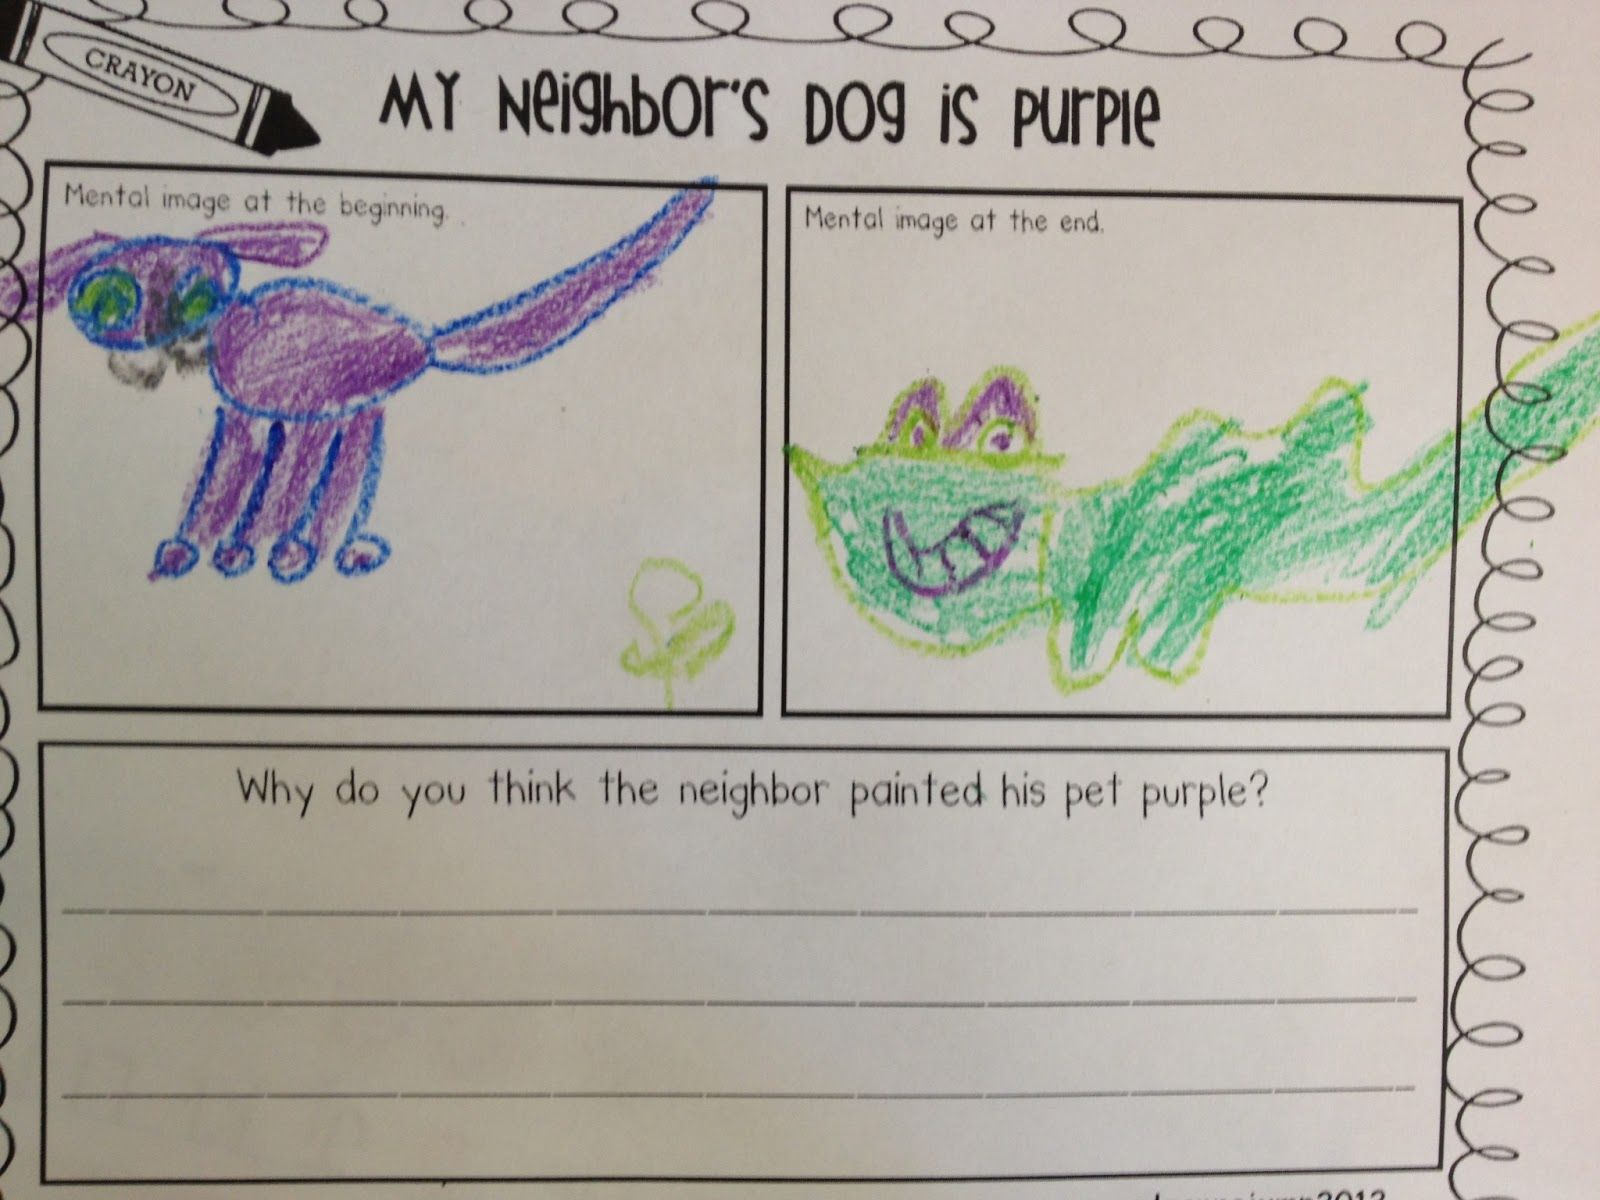 Can You See What I See? (Making Mental Images) - Miss DeCarbo